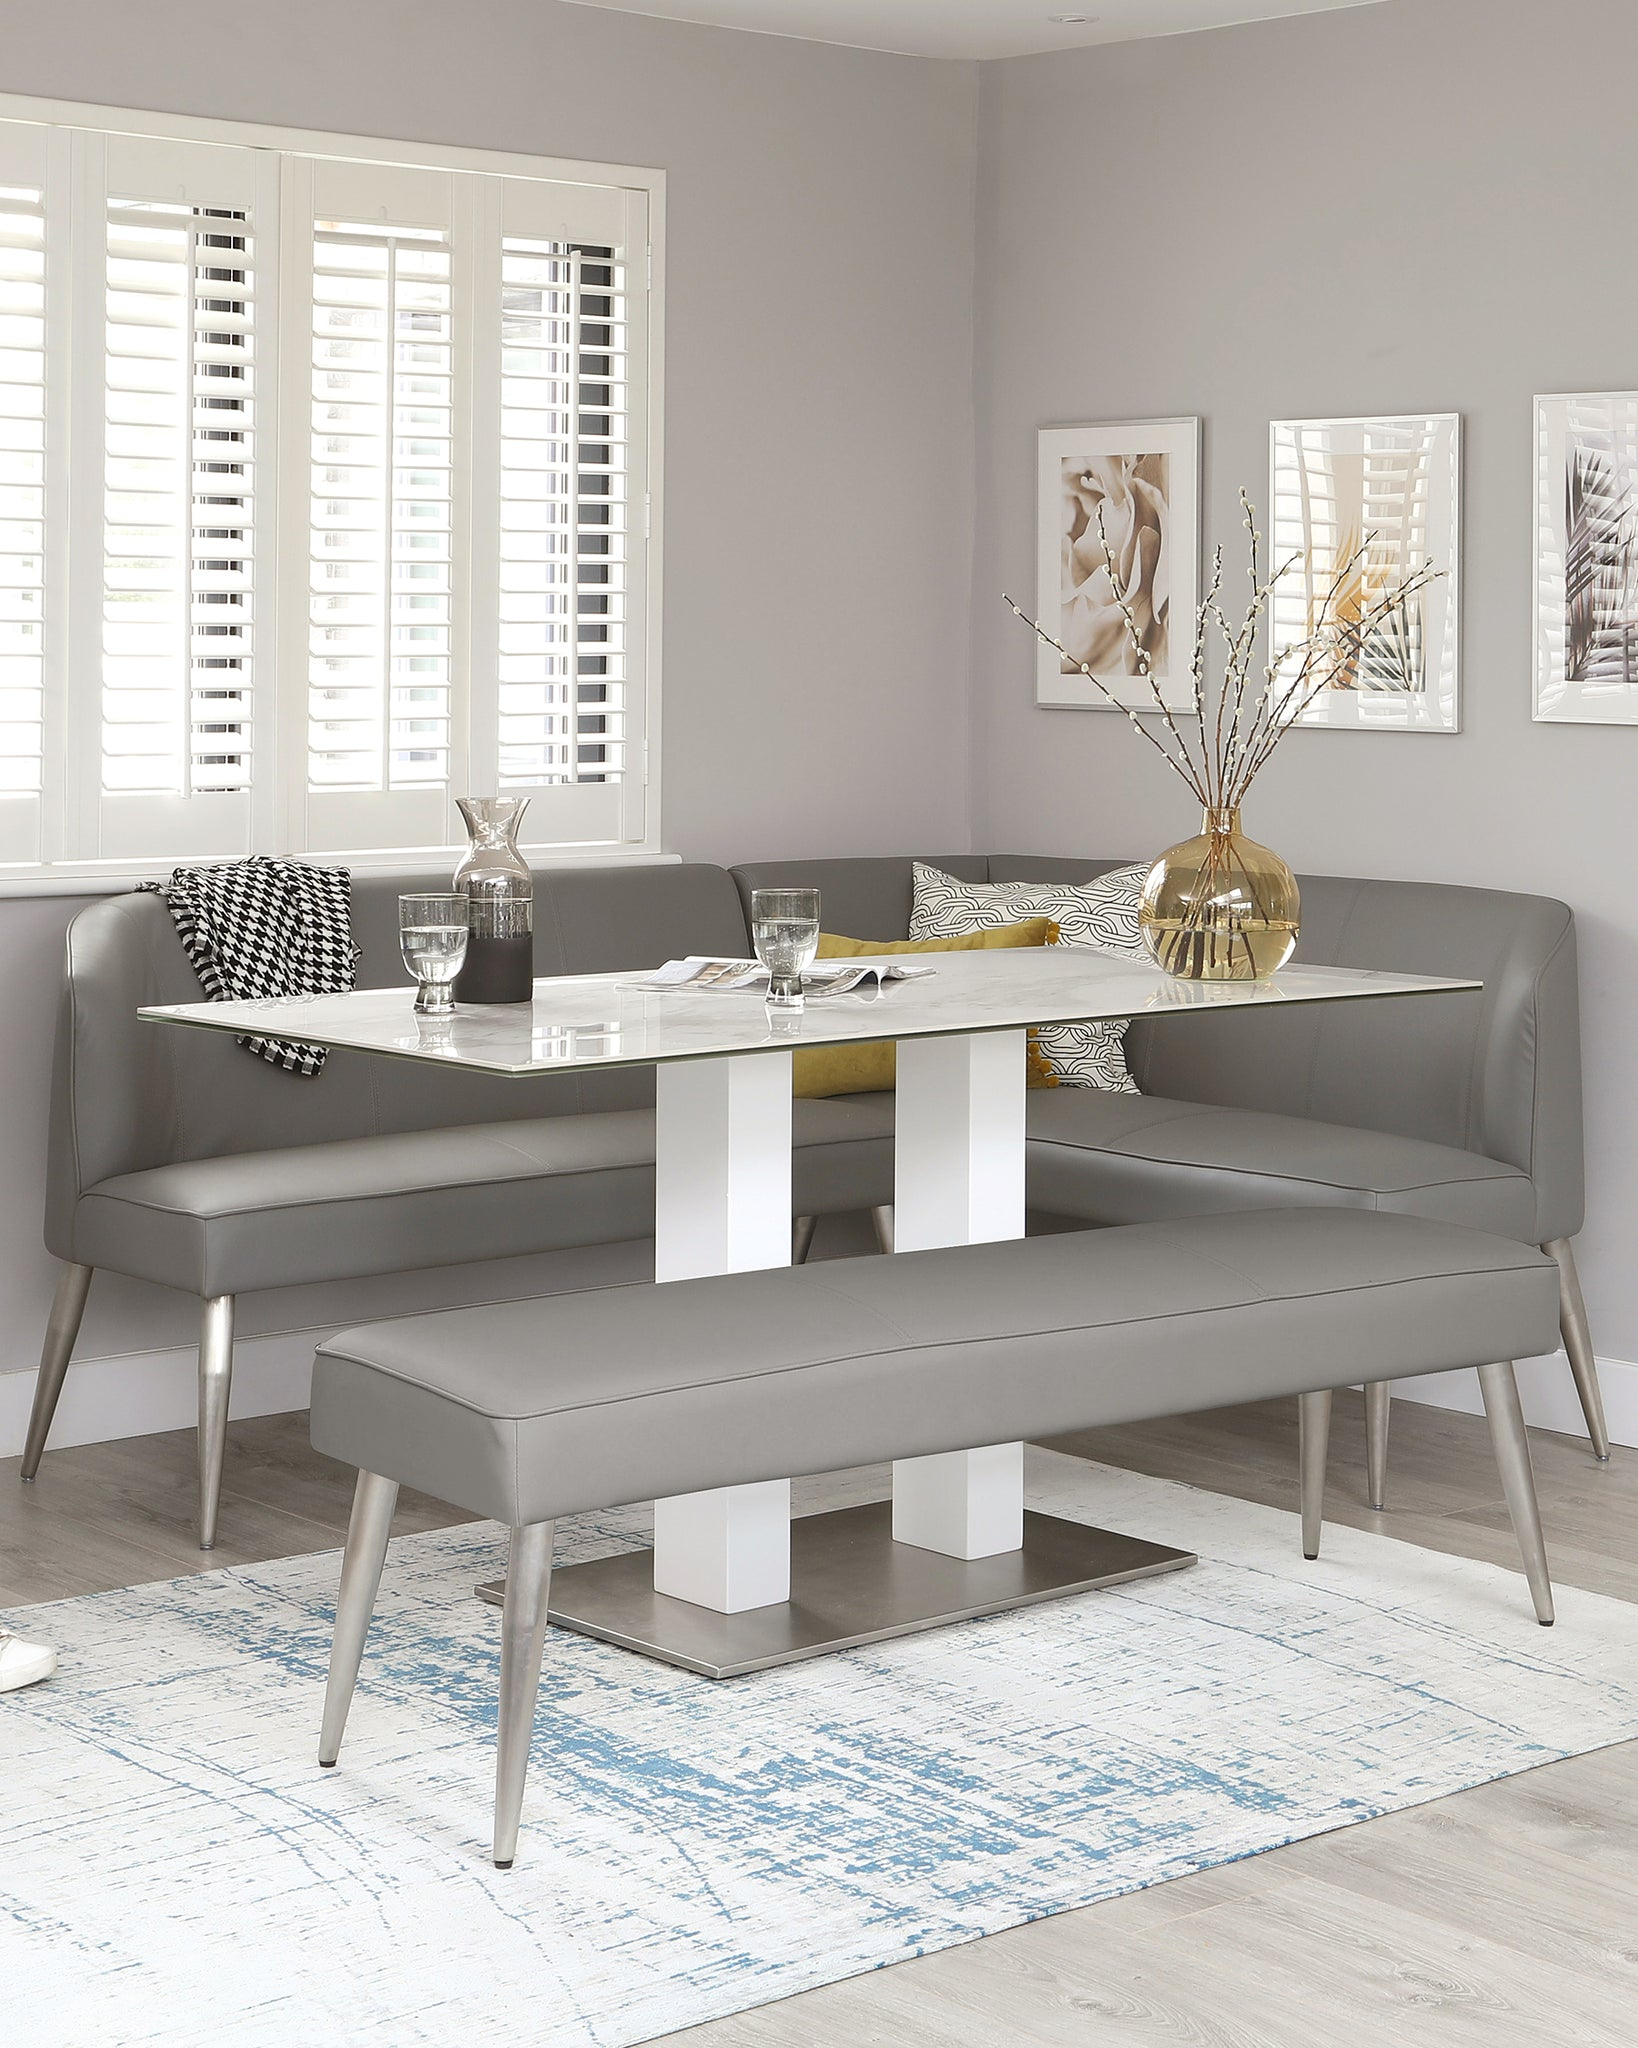 Mellow 5 Seater Mid Grey Faux Leather And Stainless Steel Left Hand Corner Bench